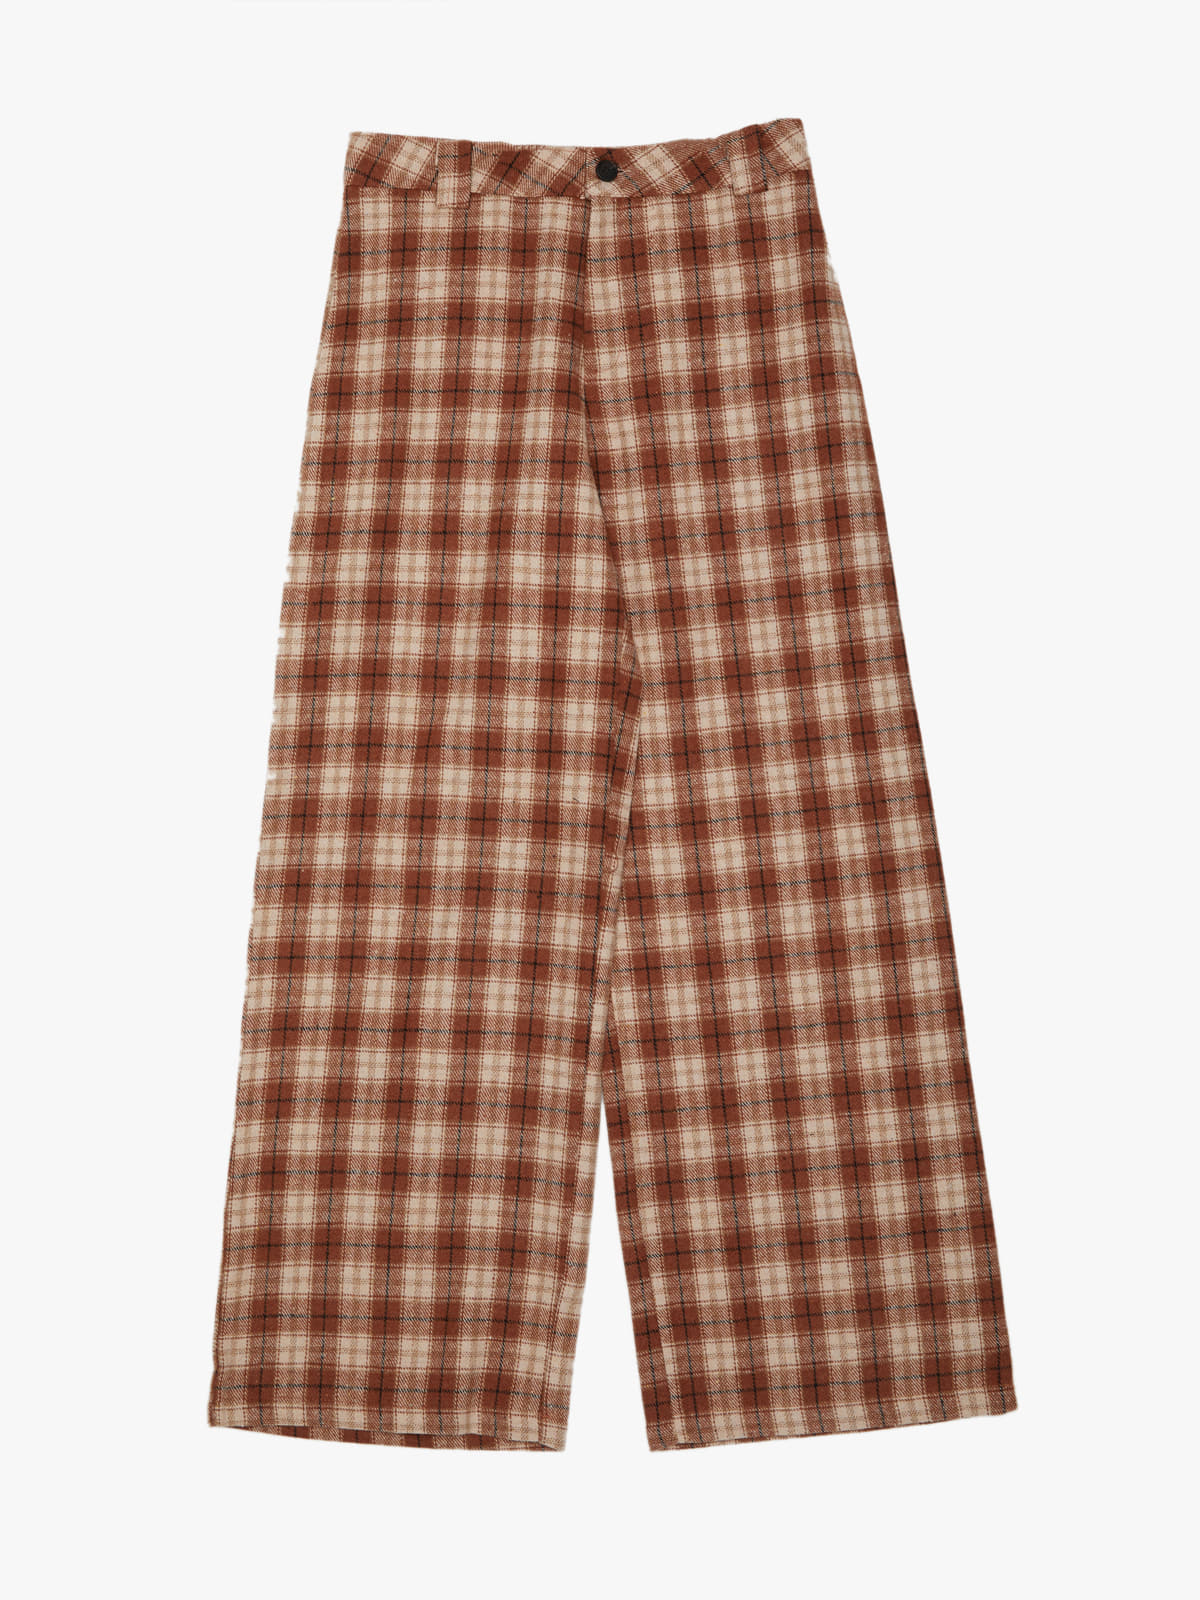 Warming Check pants Brown